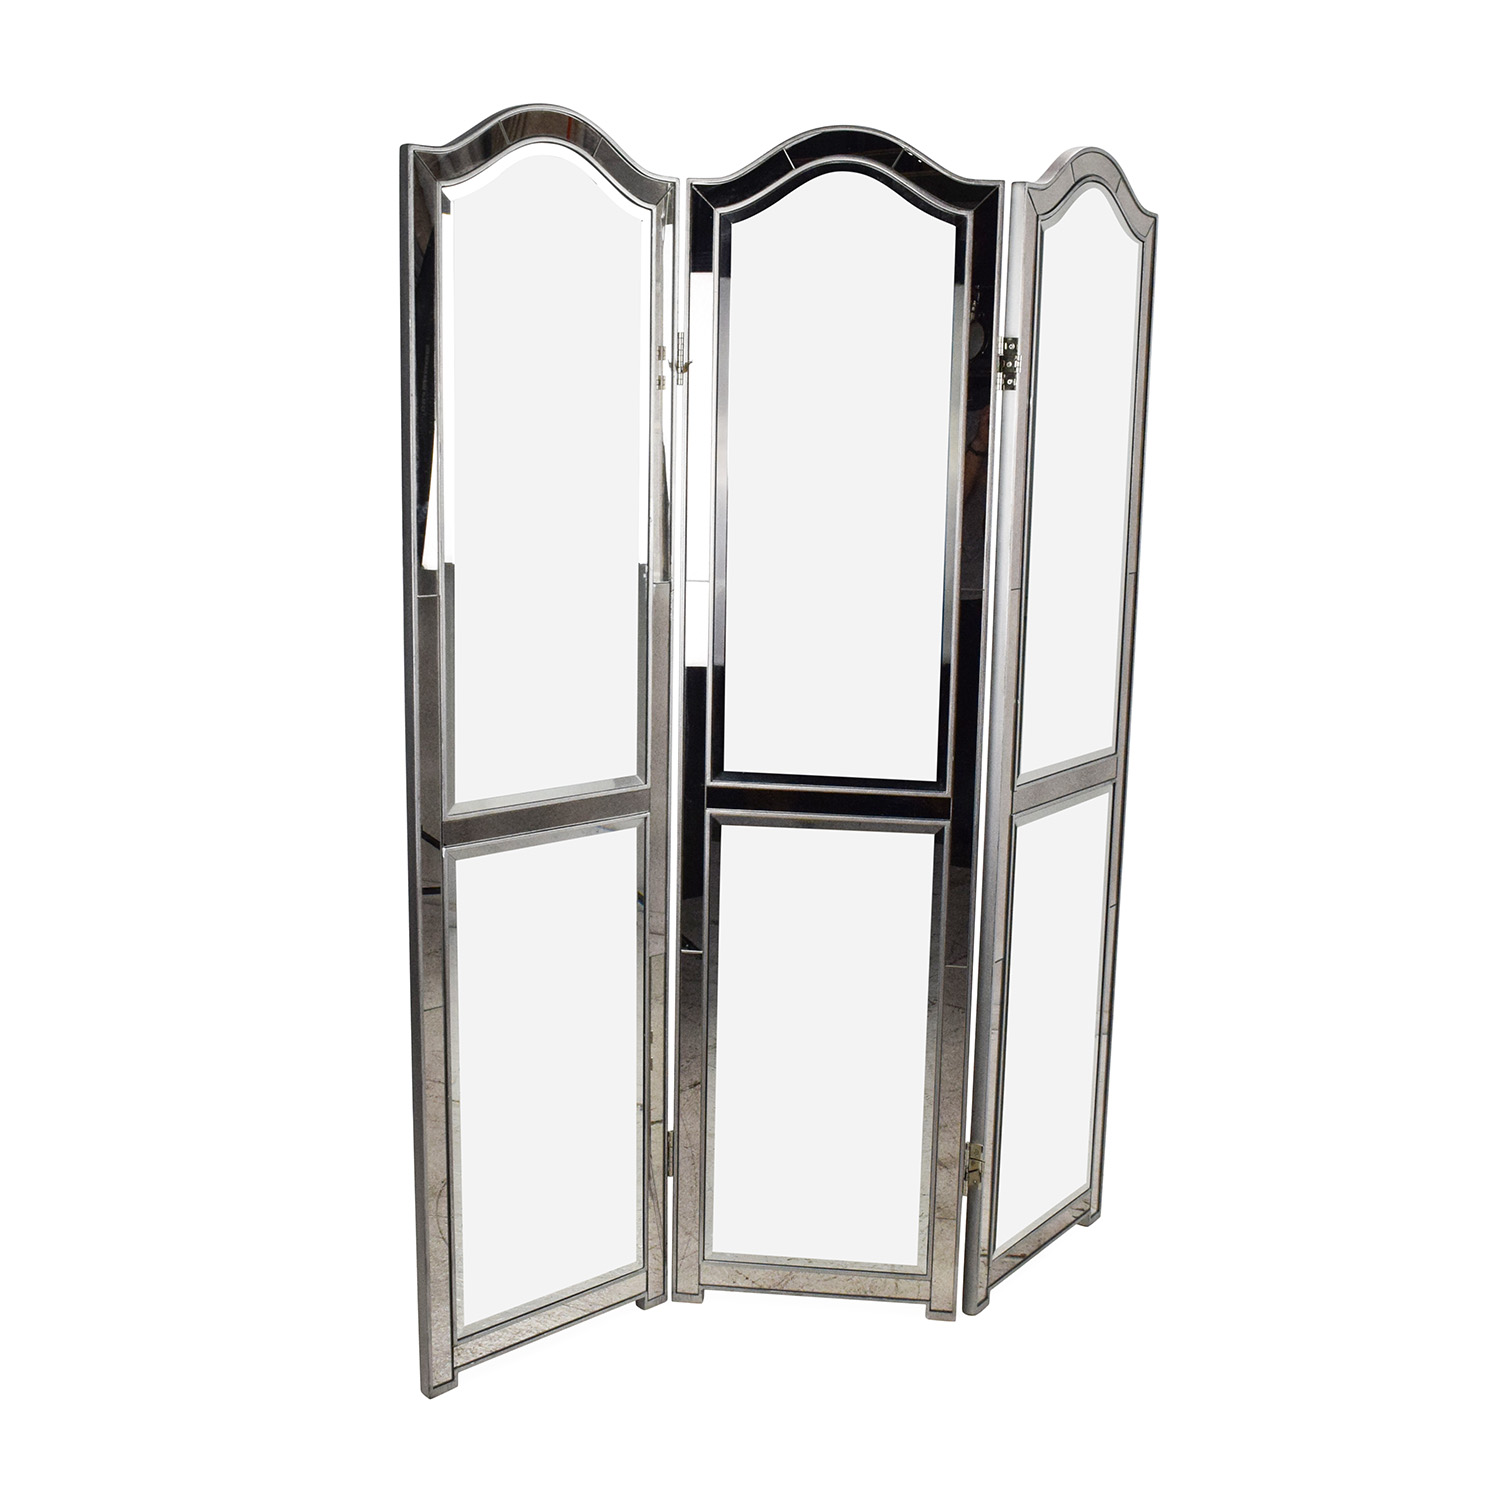 buy Pier 1 Hayworth Mirrored Room Divider Pier 1 Imports Dividers